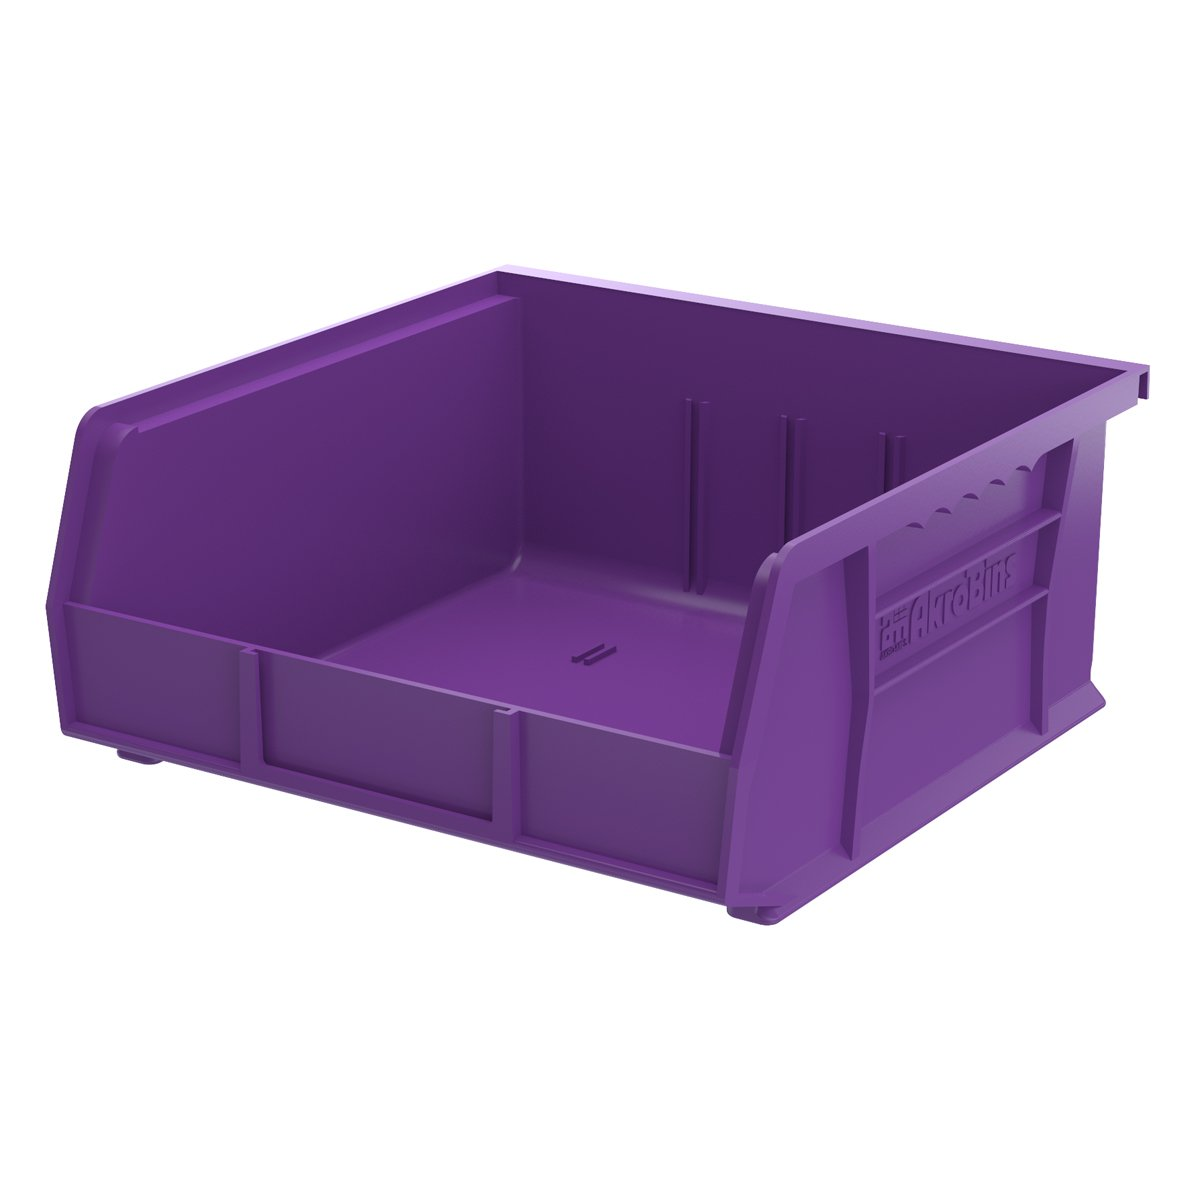 Akro-Mils 30235 Plastic Storage Stacking Hanging Akro Bin,11-Inch by 10-7/8-Inch by 5-Inch, Purple, 6-Pack